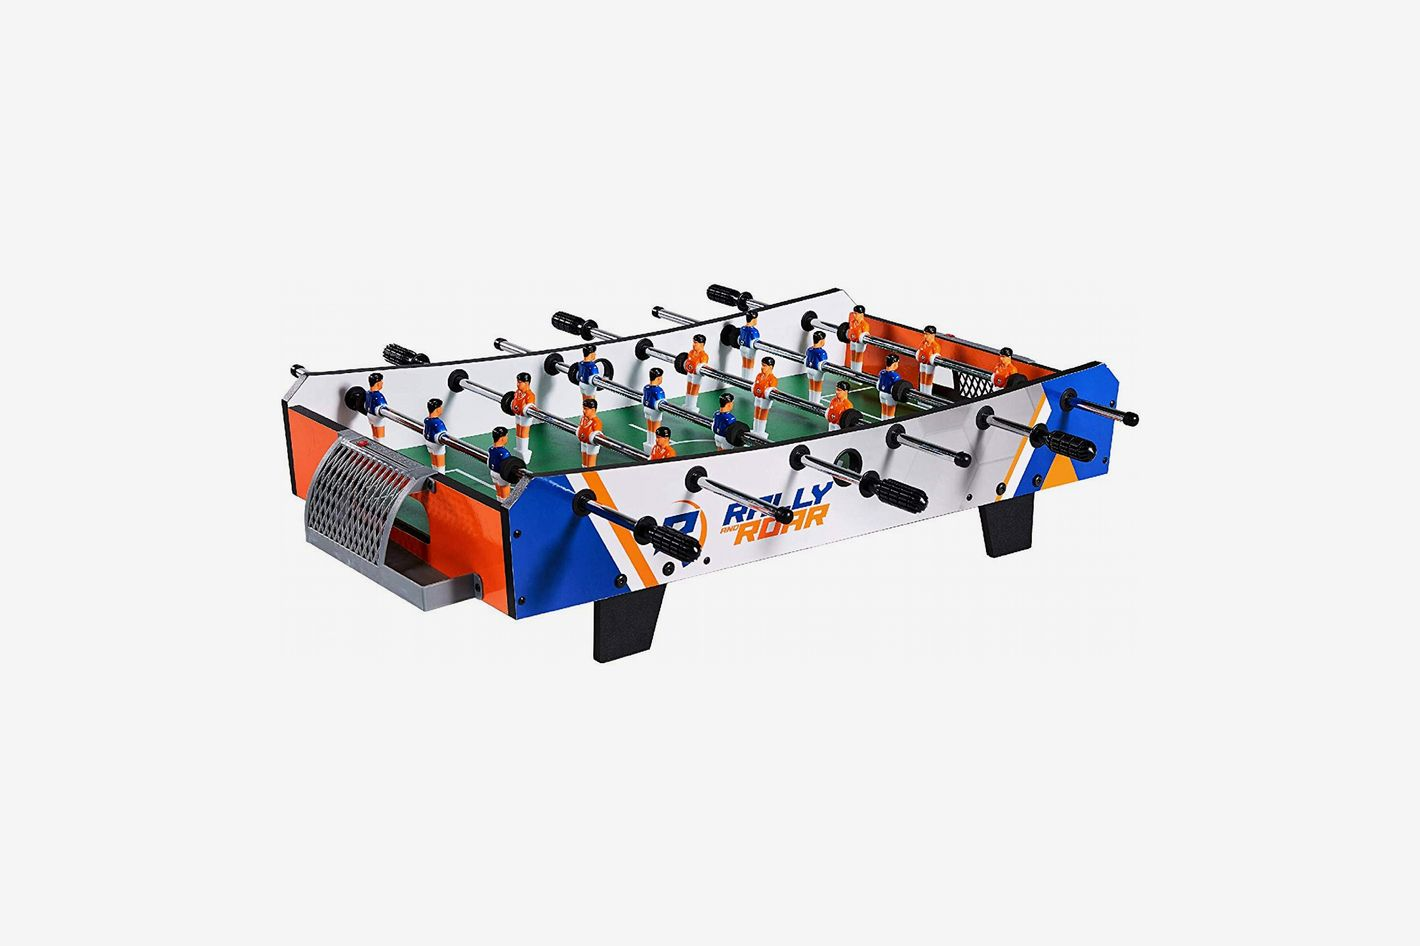 Rally and Roar Mini Foosball Tabletop Game